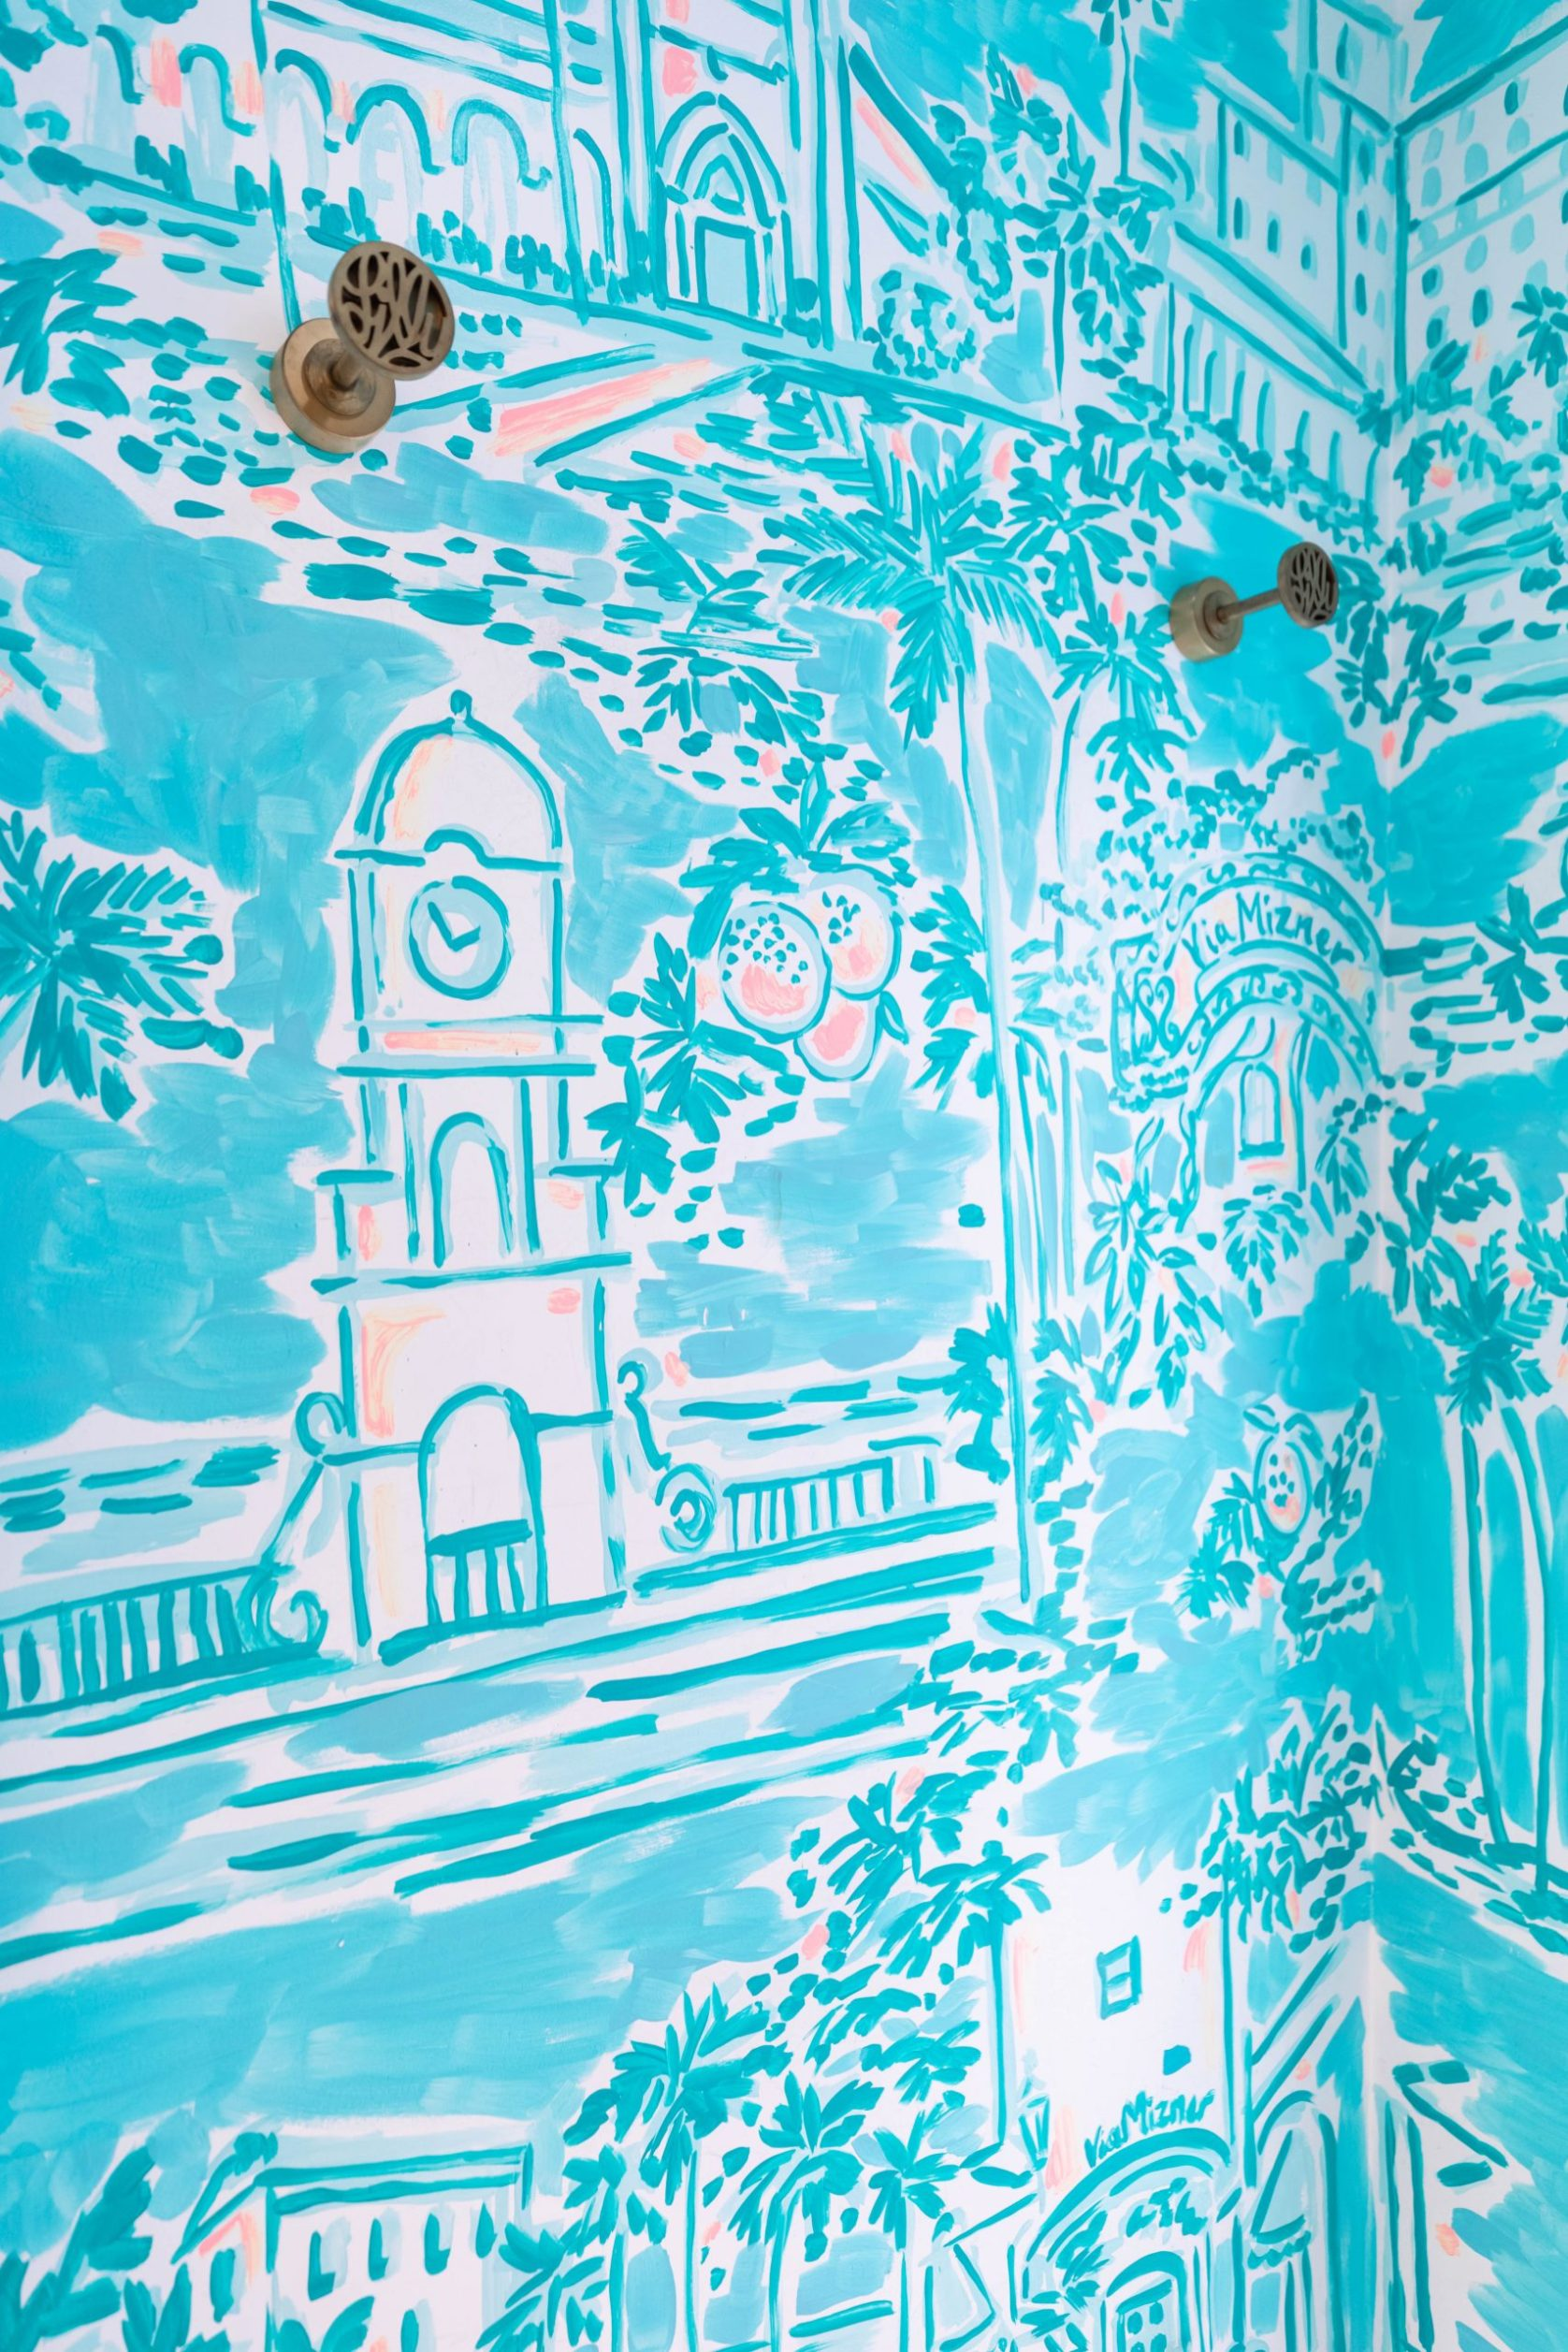 Disney Springs Orlando Florida Lilly Pulitzer Store Handpainted Dressing Room Photographed by Annie Fairfax